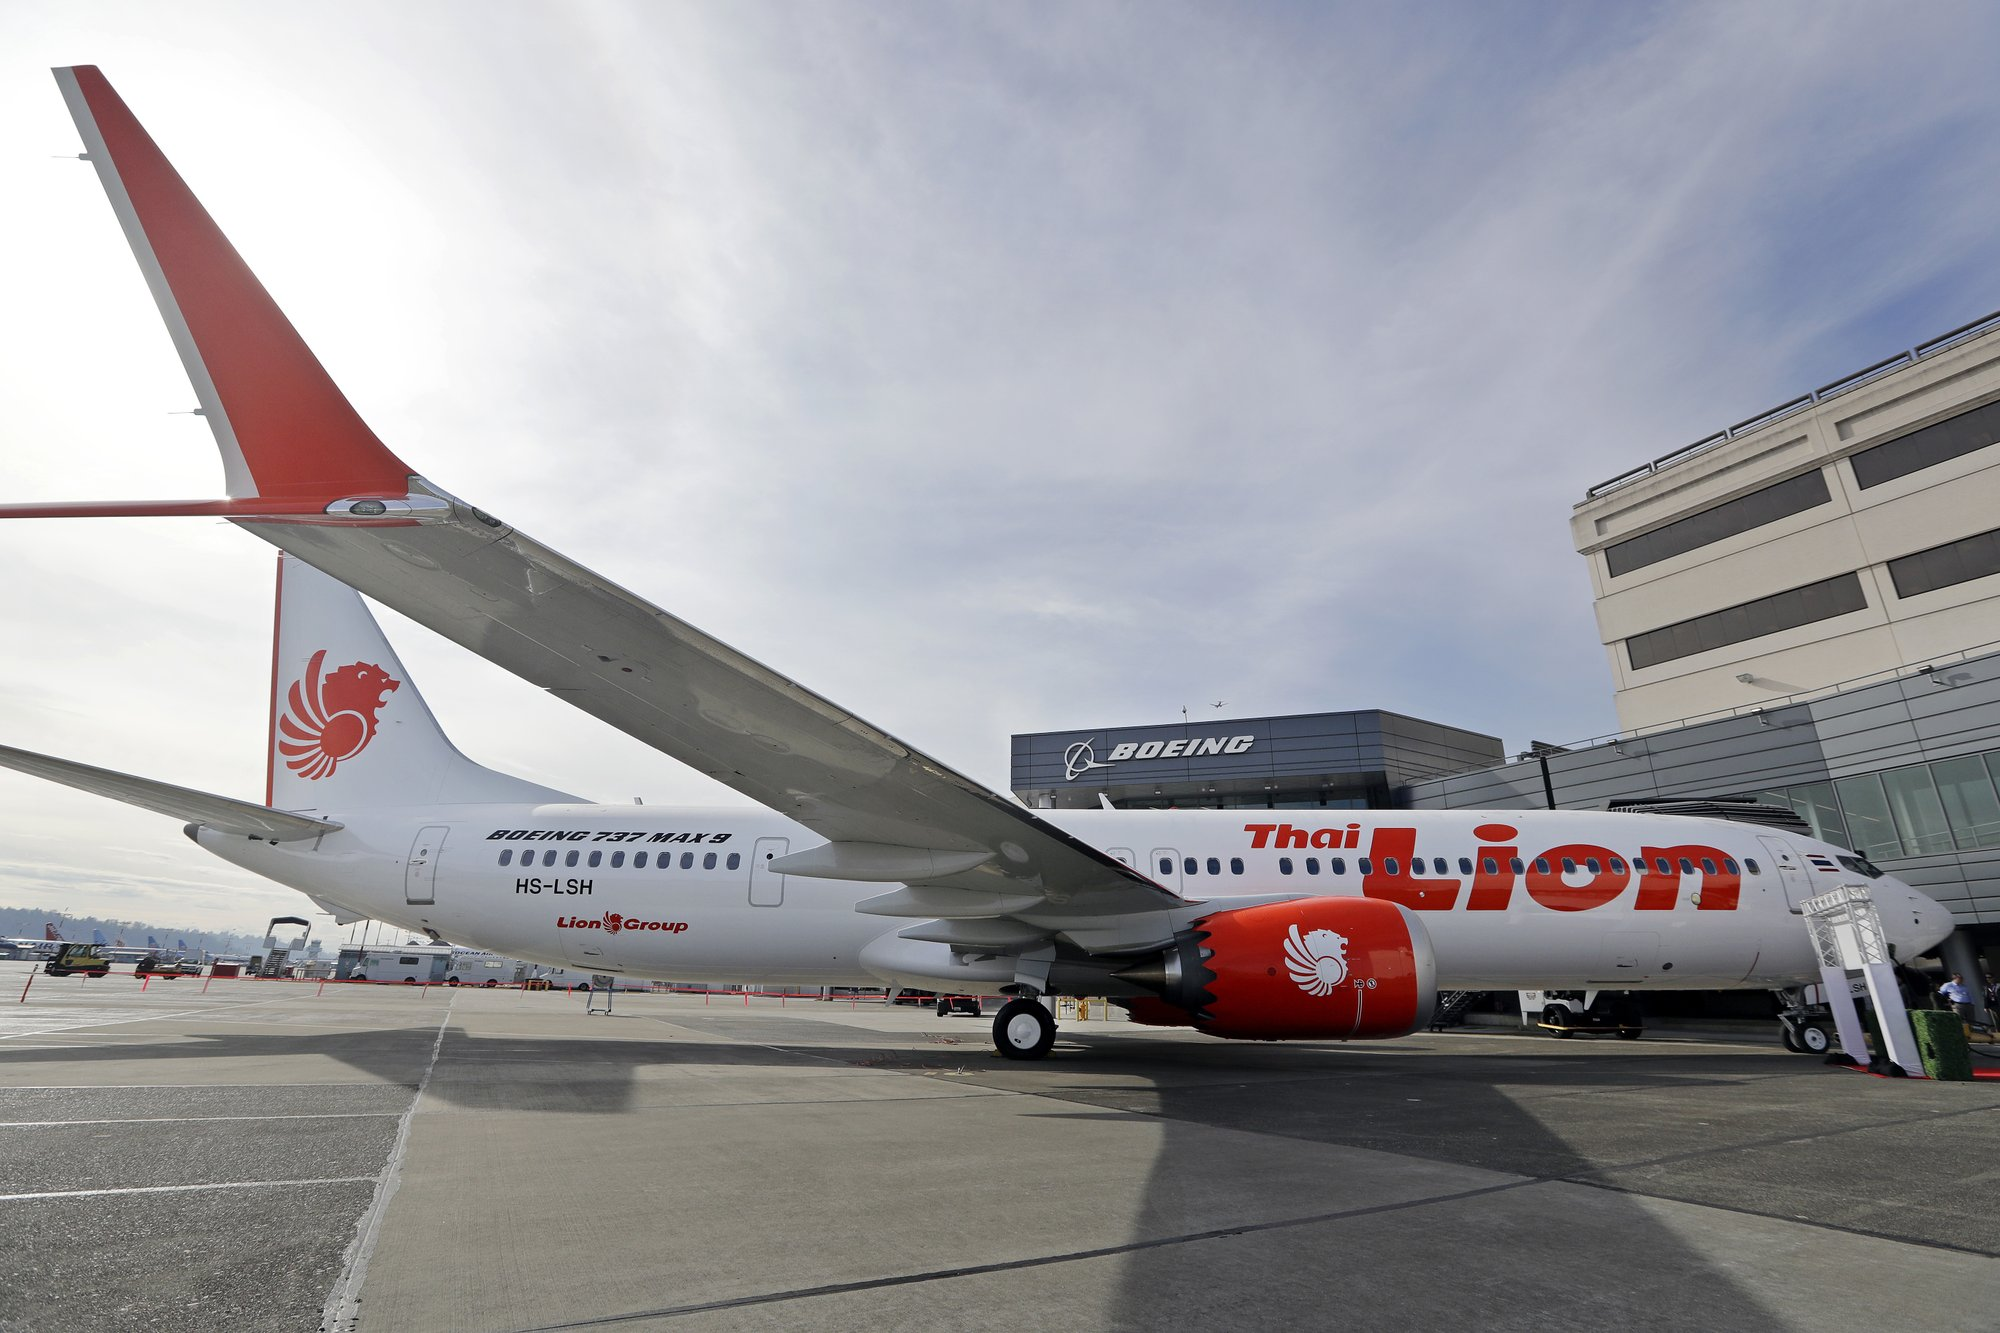 French aviation experts see clear links in 2 Boeing crashes